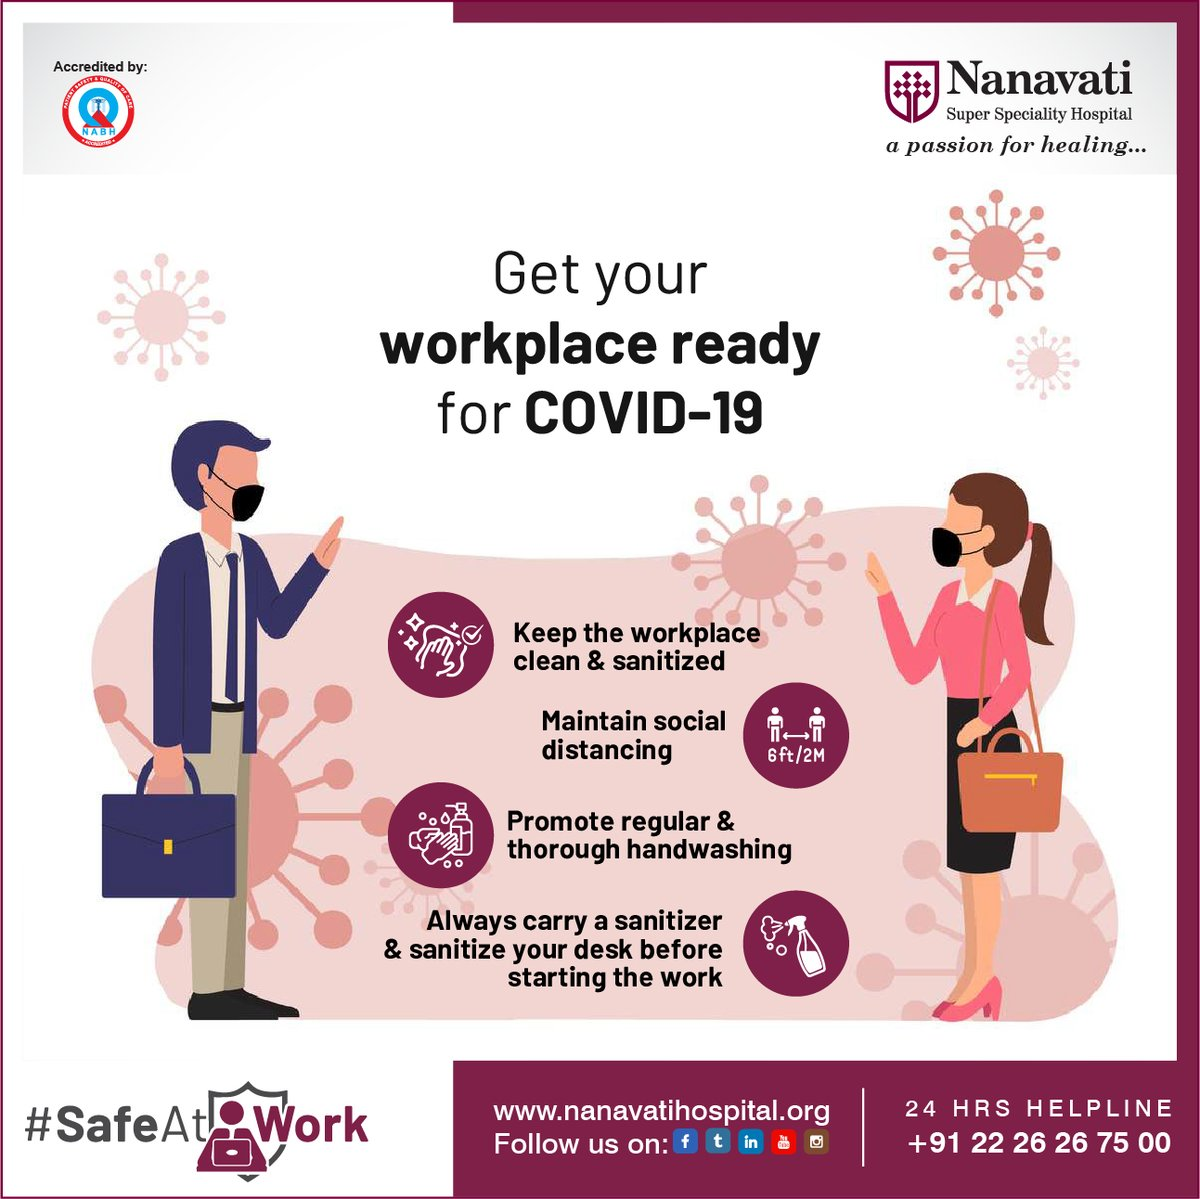 After many days of lockdown now that India is in unlocking mode, keep your workplace ready to stop the #COVID19. Follow these measures to stay #SafeAtWork  #NanavatiHospital #Mumbai #Health #Healthcare #HereForYou #IndiaFightsCorona #SocialDistancing #HandWashing https://t.co/Gz9pJtPMaW